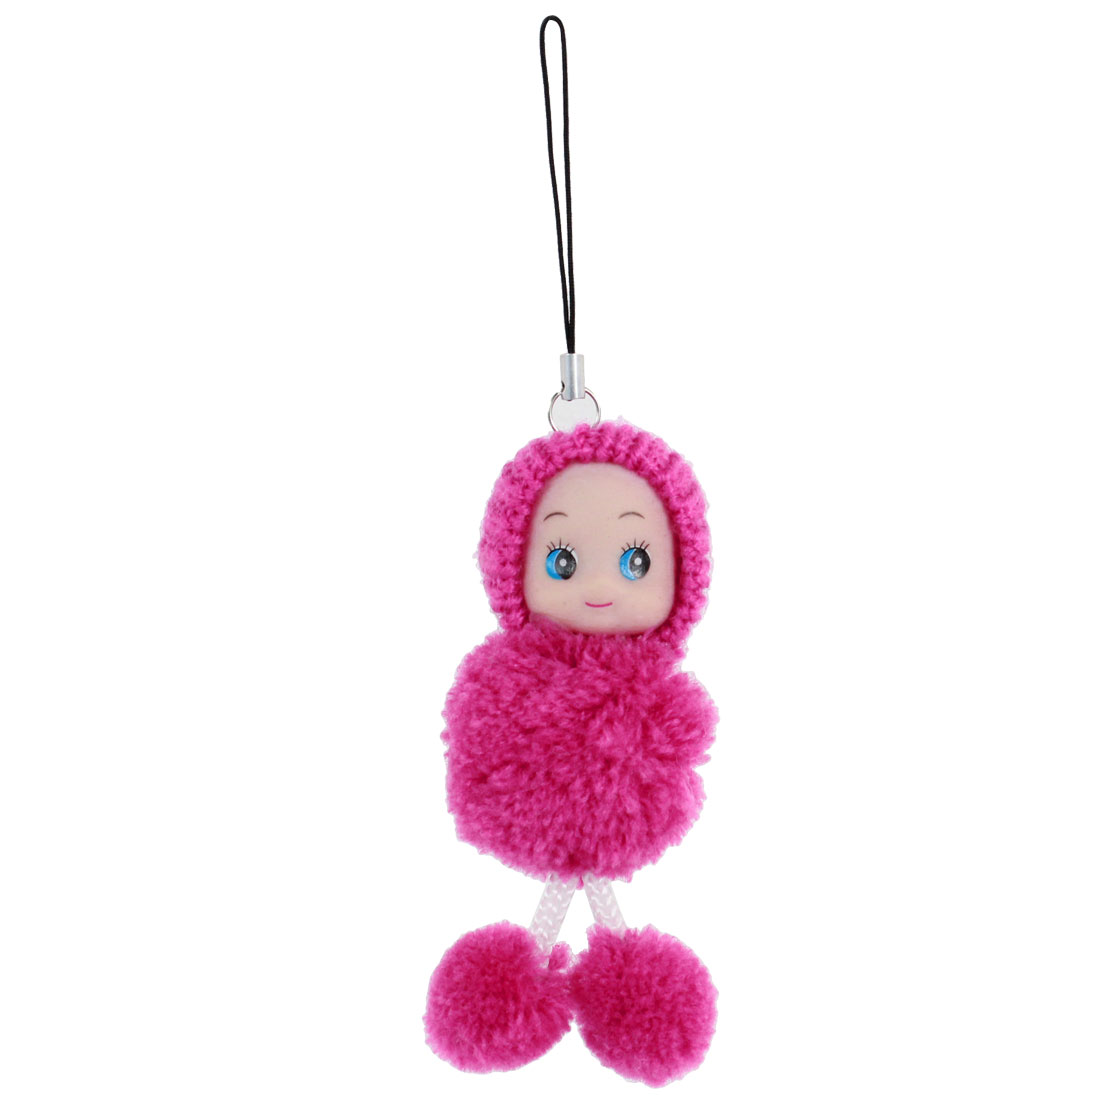 Fuchsia Knitted Doll Decoration Dangling Strap String Pendant Mp3 Mp4 Mobile Phone Charm Strap Handbag Hanging Ornament